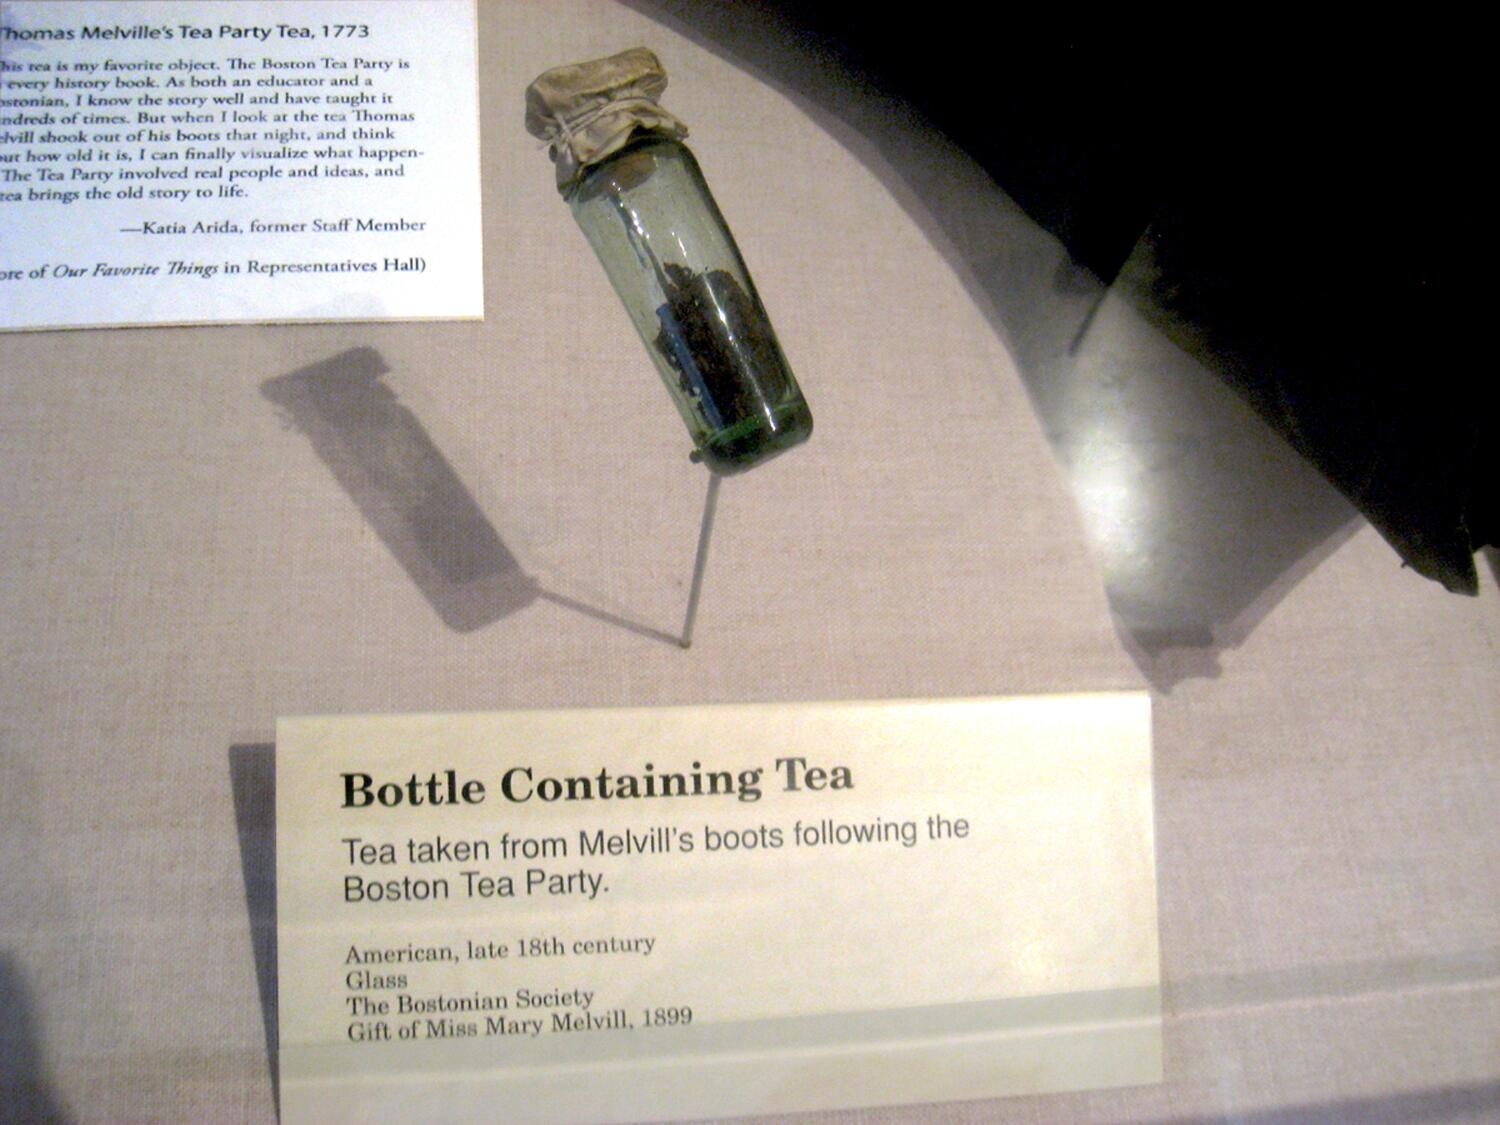 Bottle containing the tea Thomas Melvill found in his boots after the Boston Tea Party in 1773. The Tea Party participants went to great lengths to ensure no one kept any of the precious tea. When Melvill returned to his home he discovered there were tea leaves in his boots, and so he placed the leaves in a vial and surreptitiously held them for the remainder of his life. Handed down in the Melvill family, the leaves were donated to Boston's Old State House Museum in 1899 by a descendent, Miss Mary Melvill.